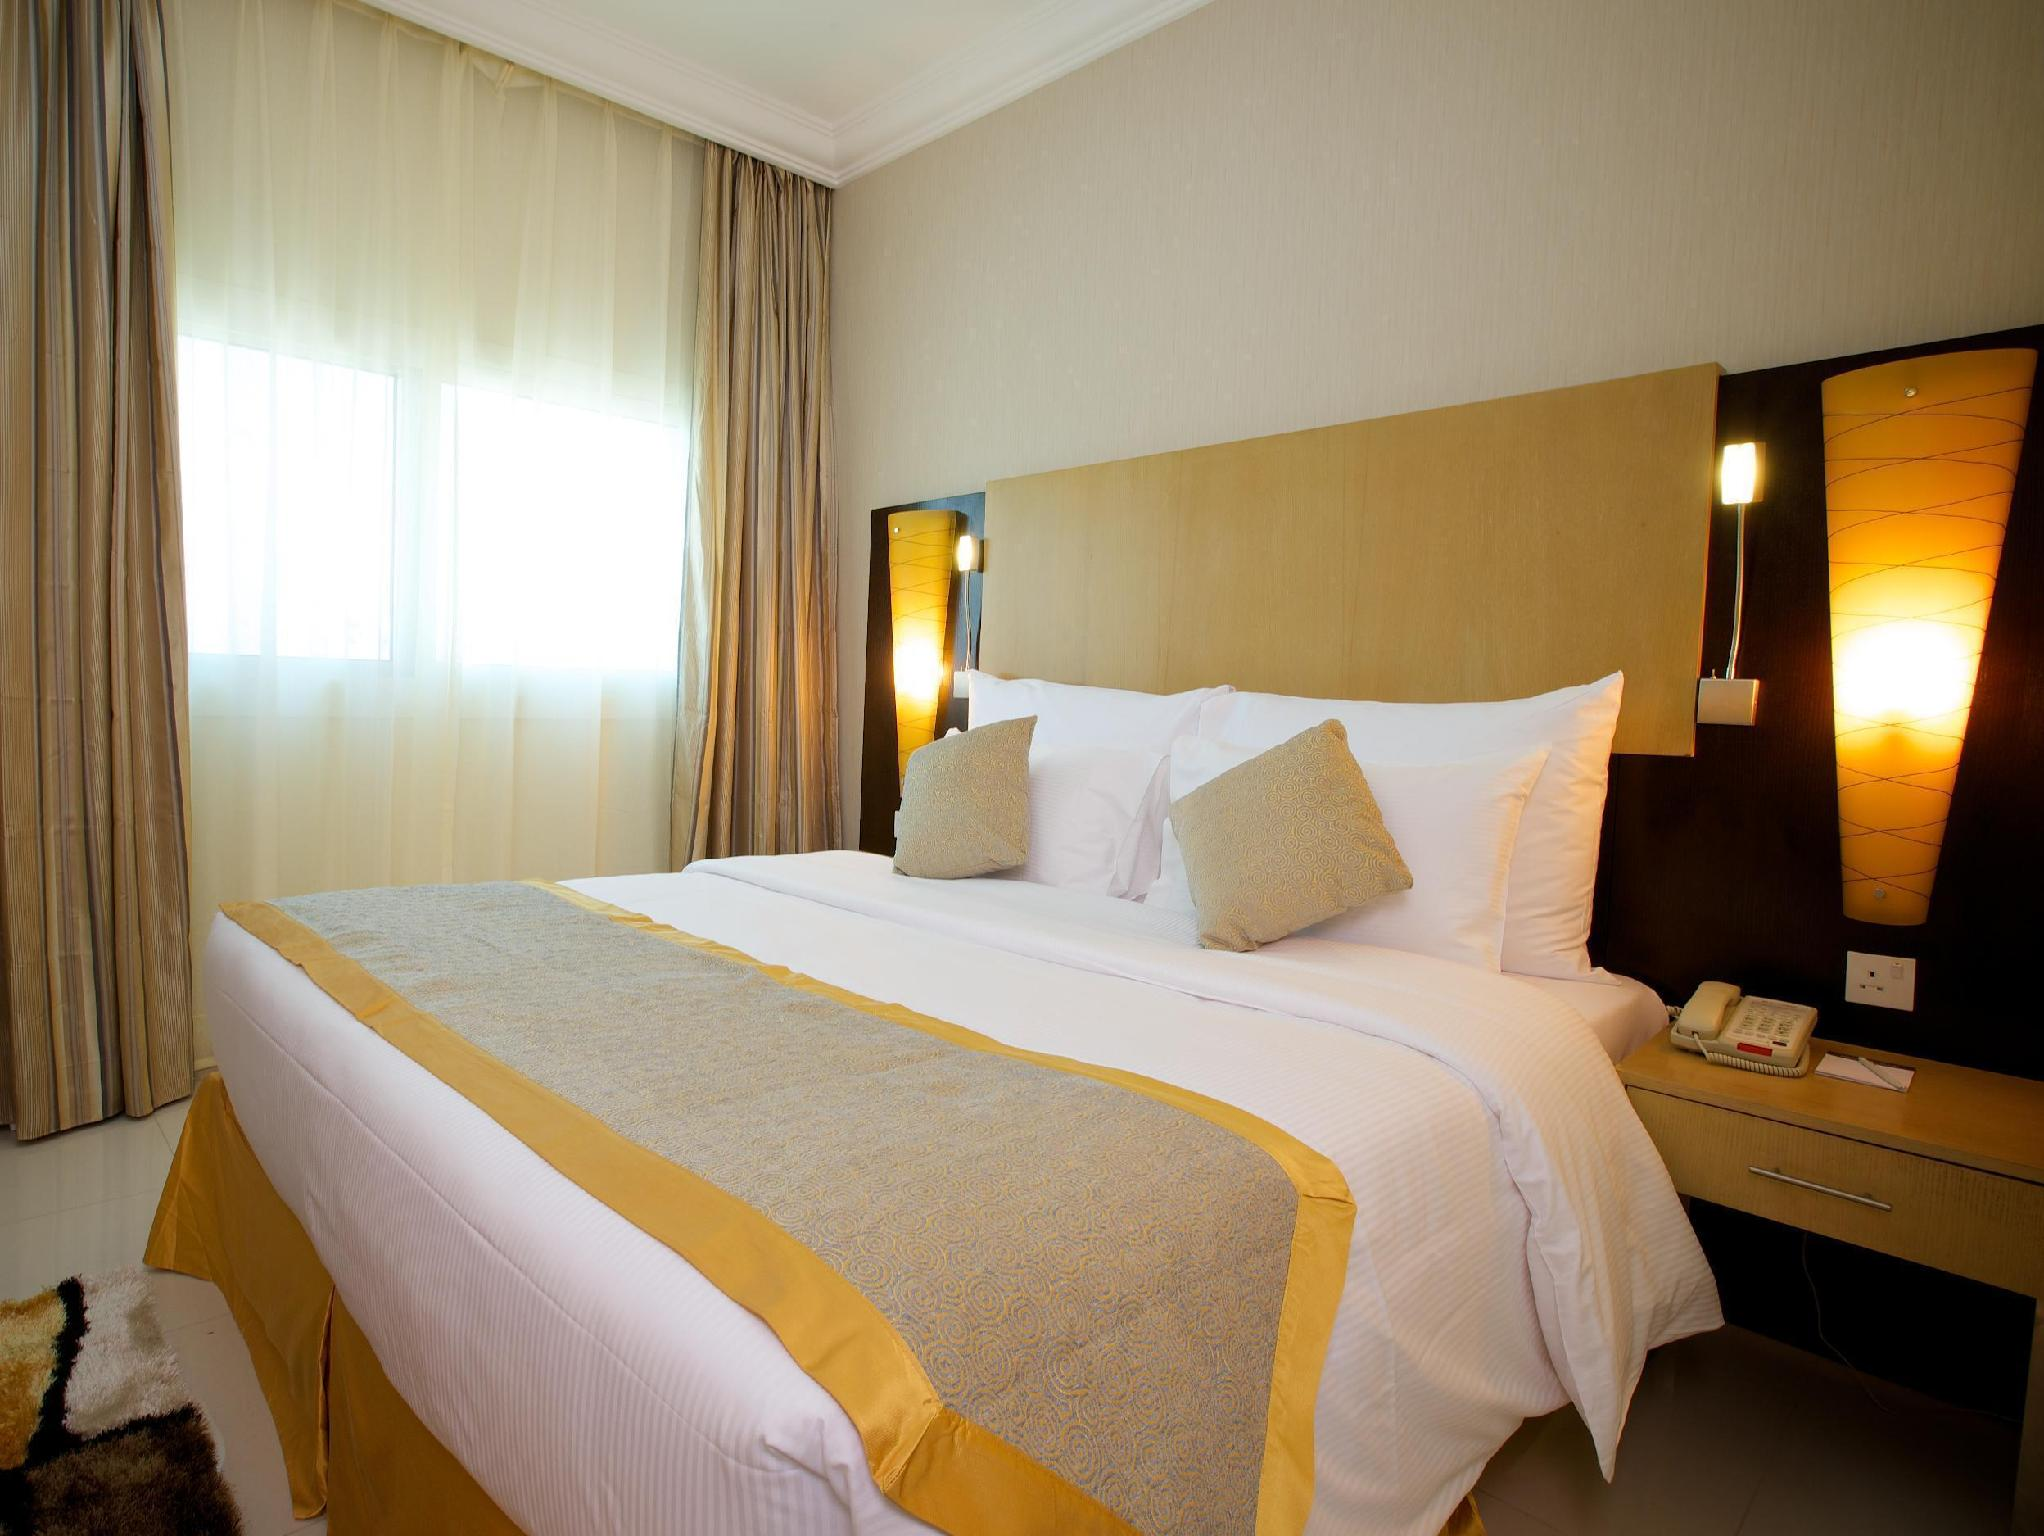 Best Price On Montana Hotel Apartments In Dubai   Reviews